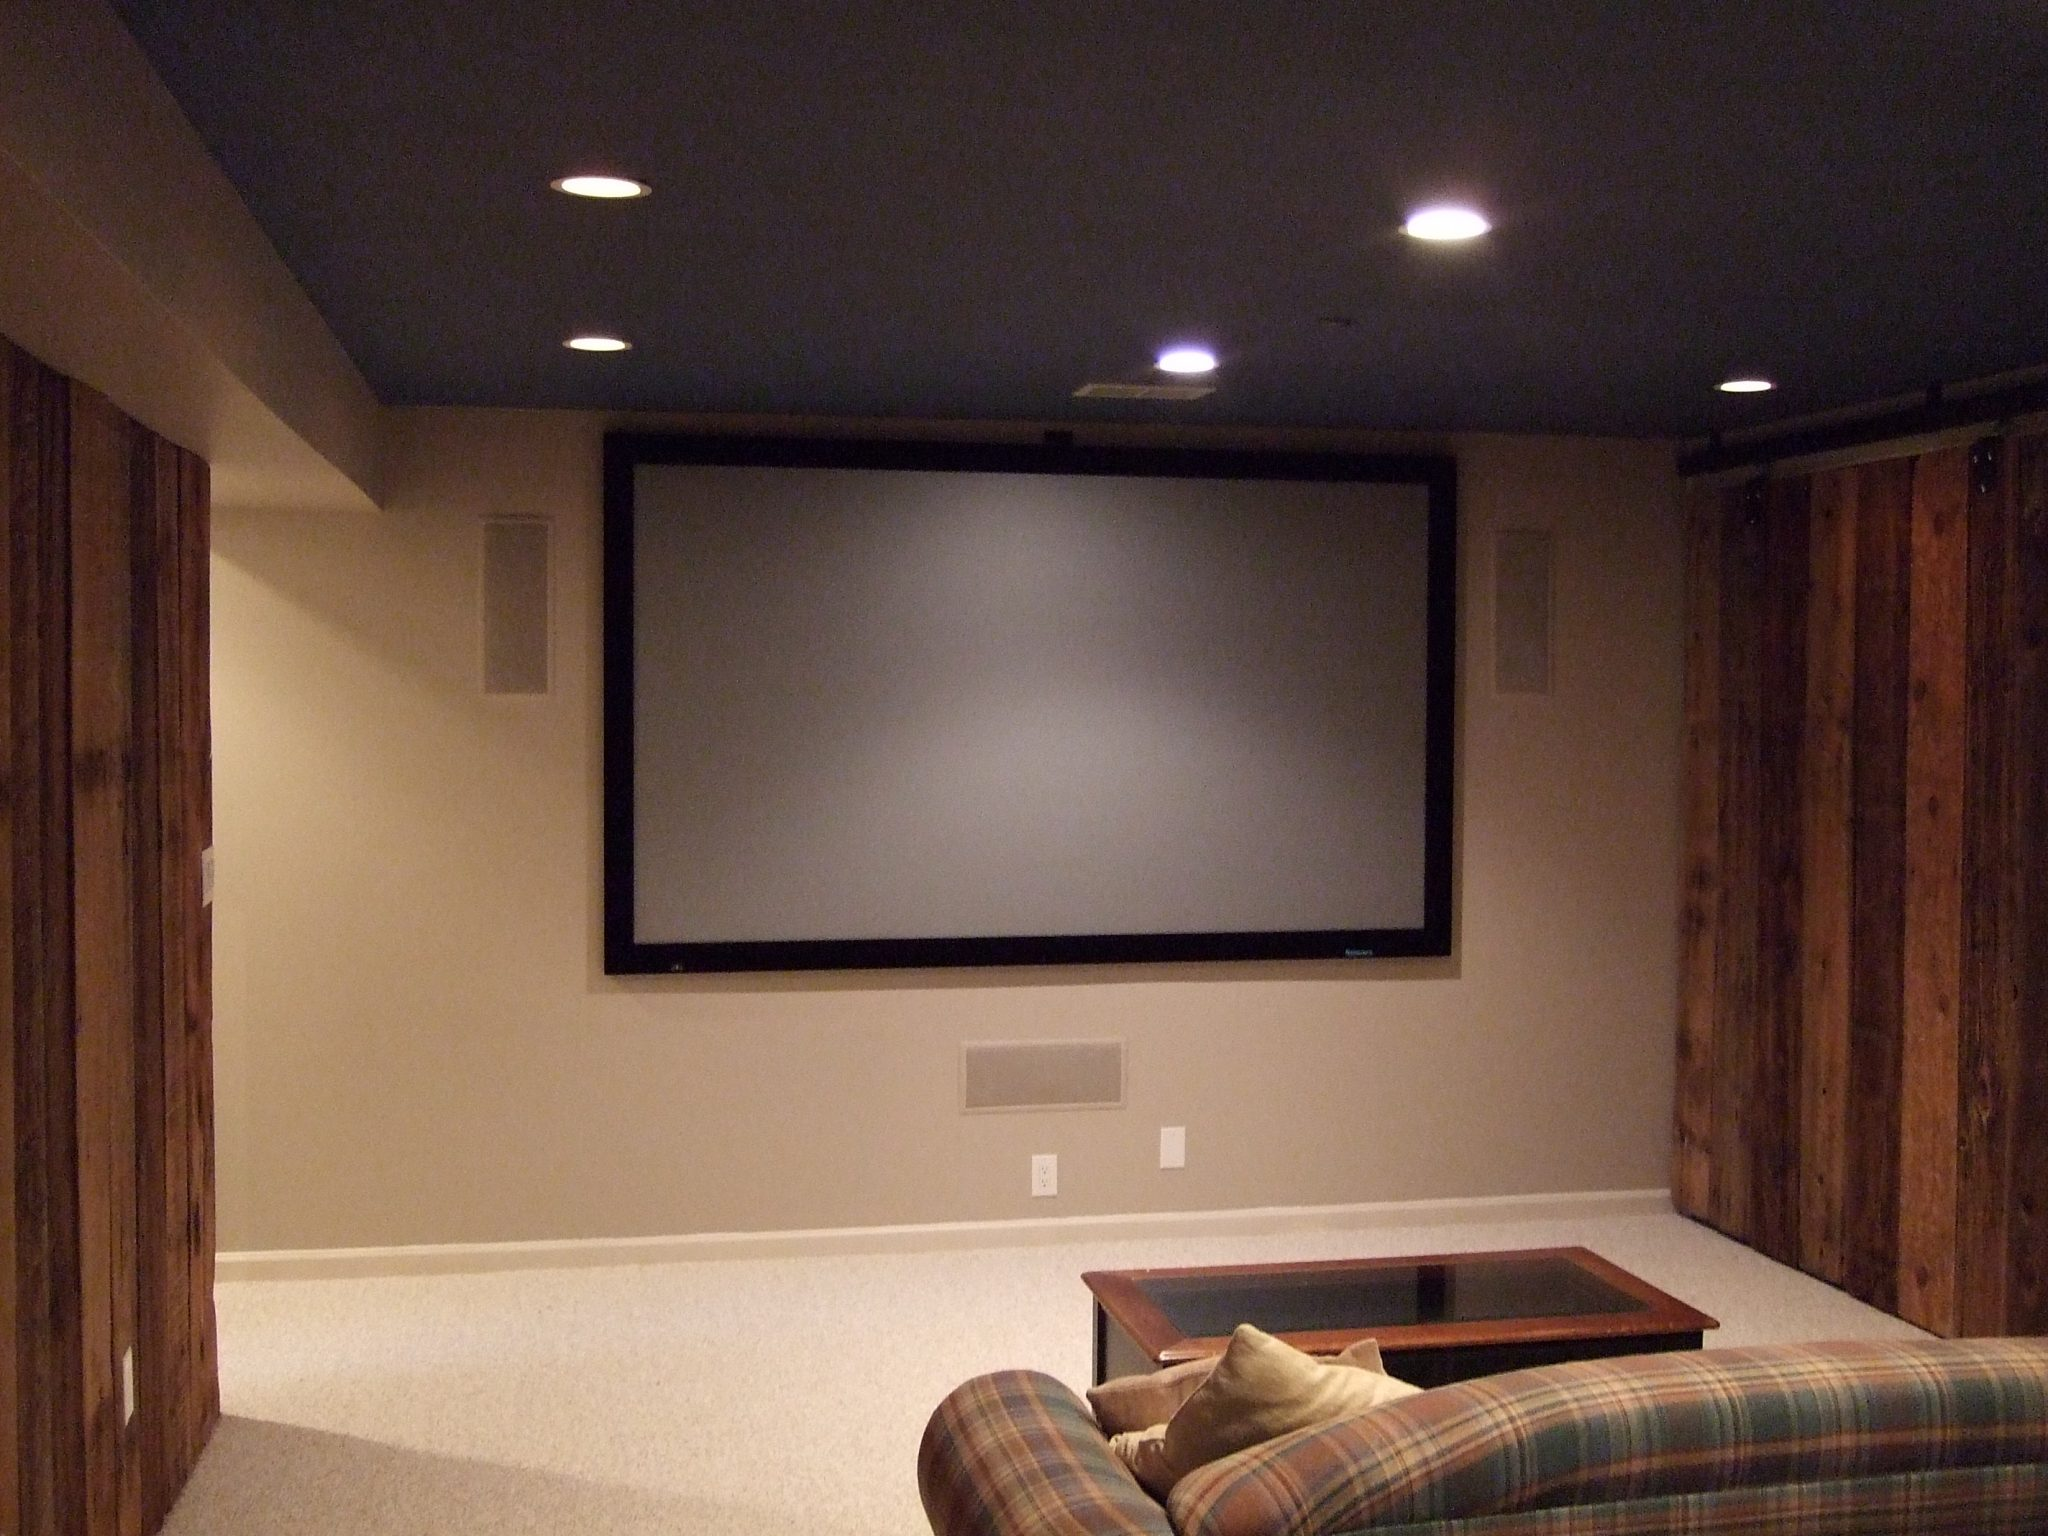 Novatek electric audio video installation sales for Small room movie theater